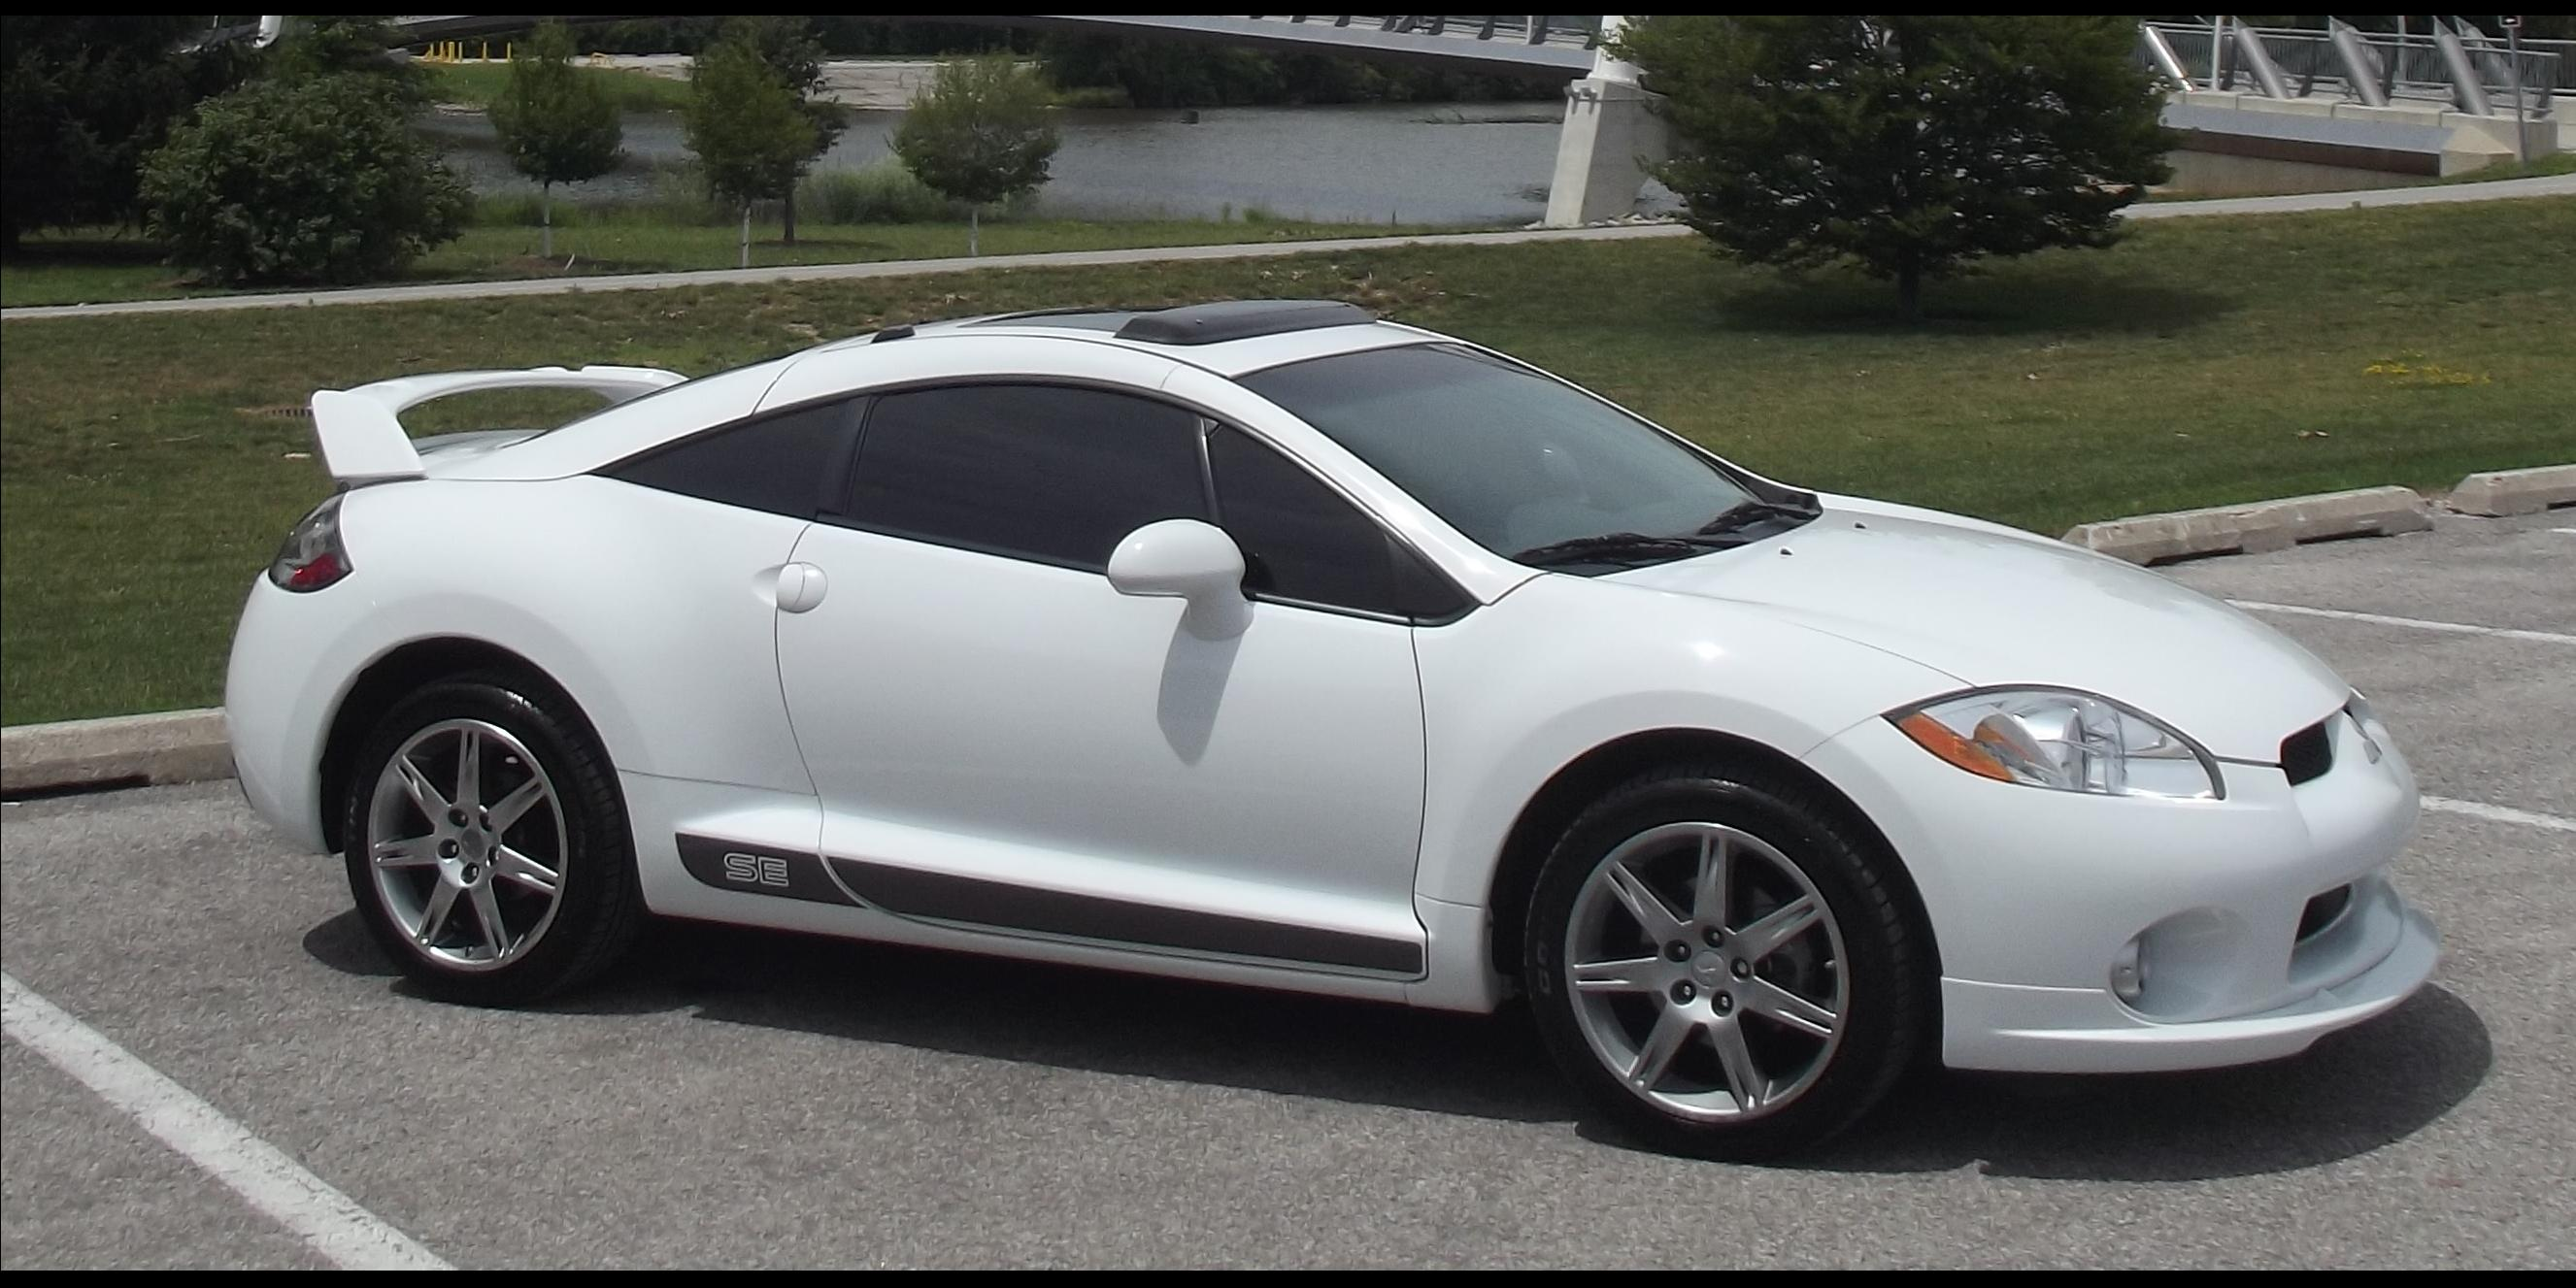 2008 Mitsubishi Eclipse GT Coupe 2D - View all 2008 Mitsubishi ...